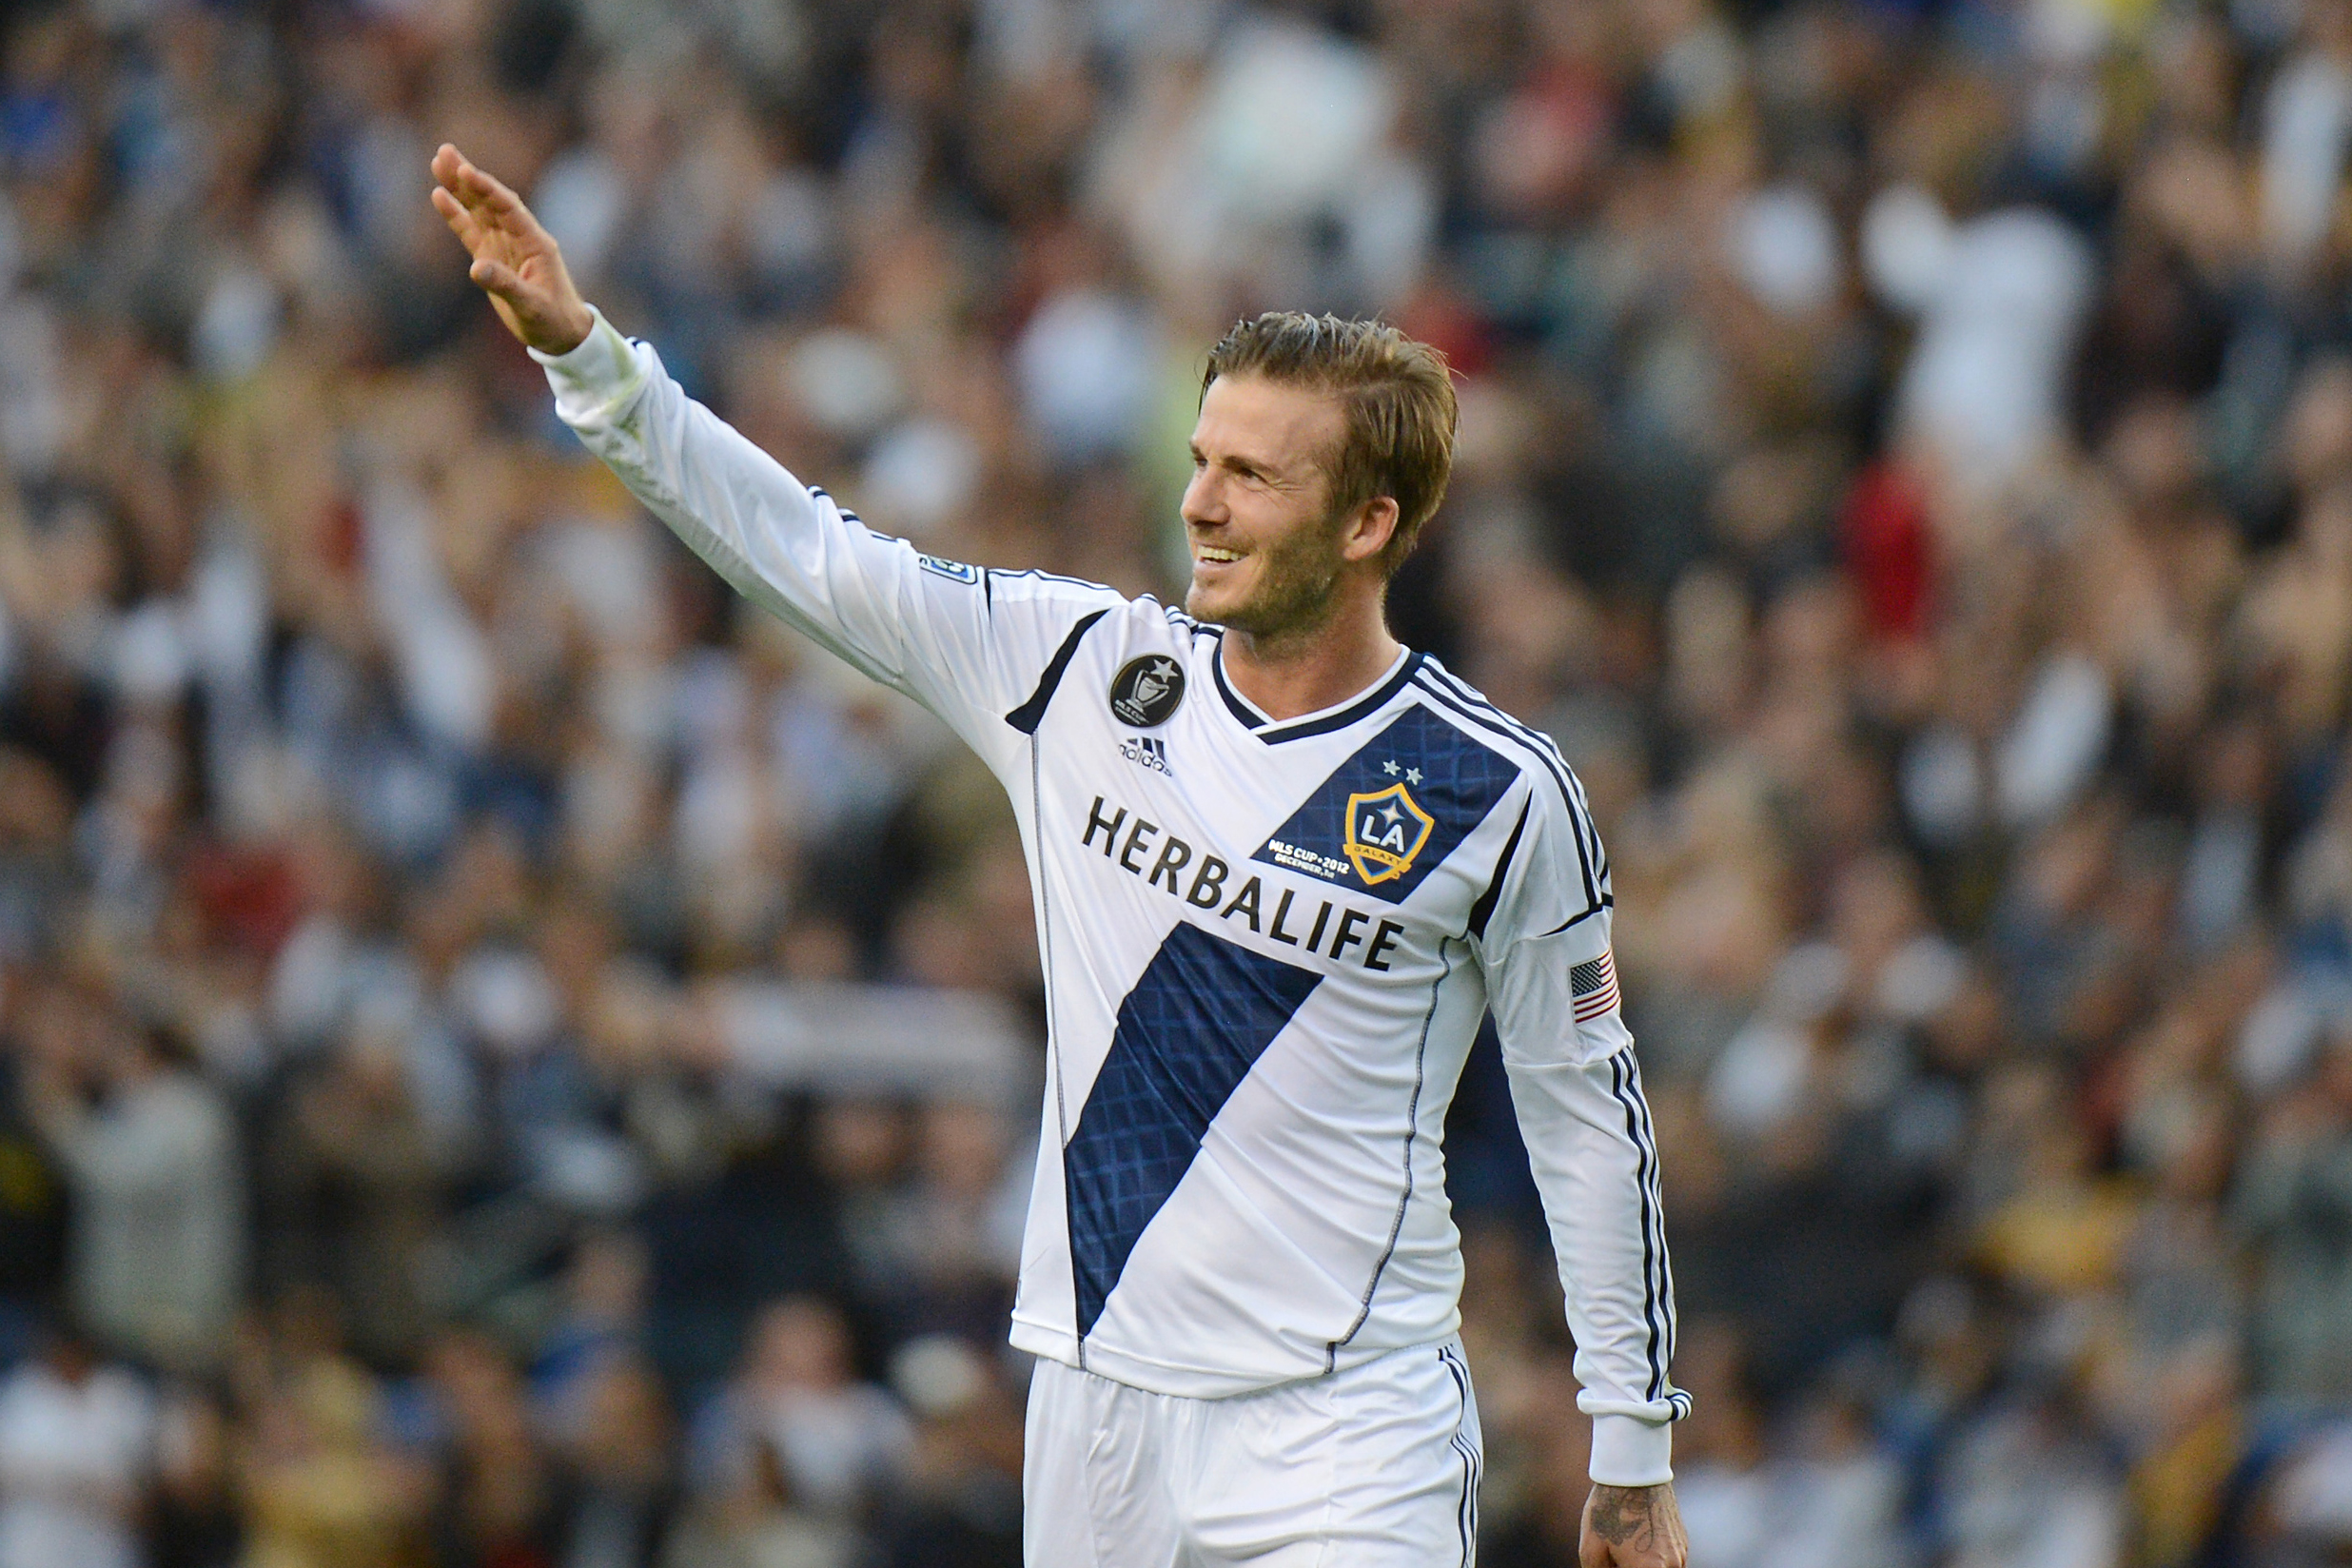 David Beckham waves to fans as he walks off the pitch after the Los Angeles Galaxy defeat the Huston Dynamo in the Major League Soccer (MLS) Cup, December 1, 2012 in Carson, California. It was Beckham's last game with the Galaxy.